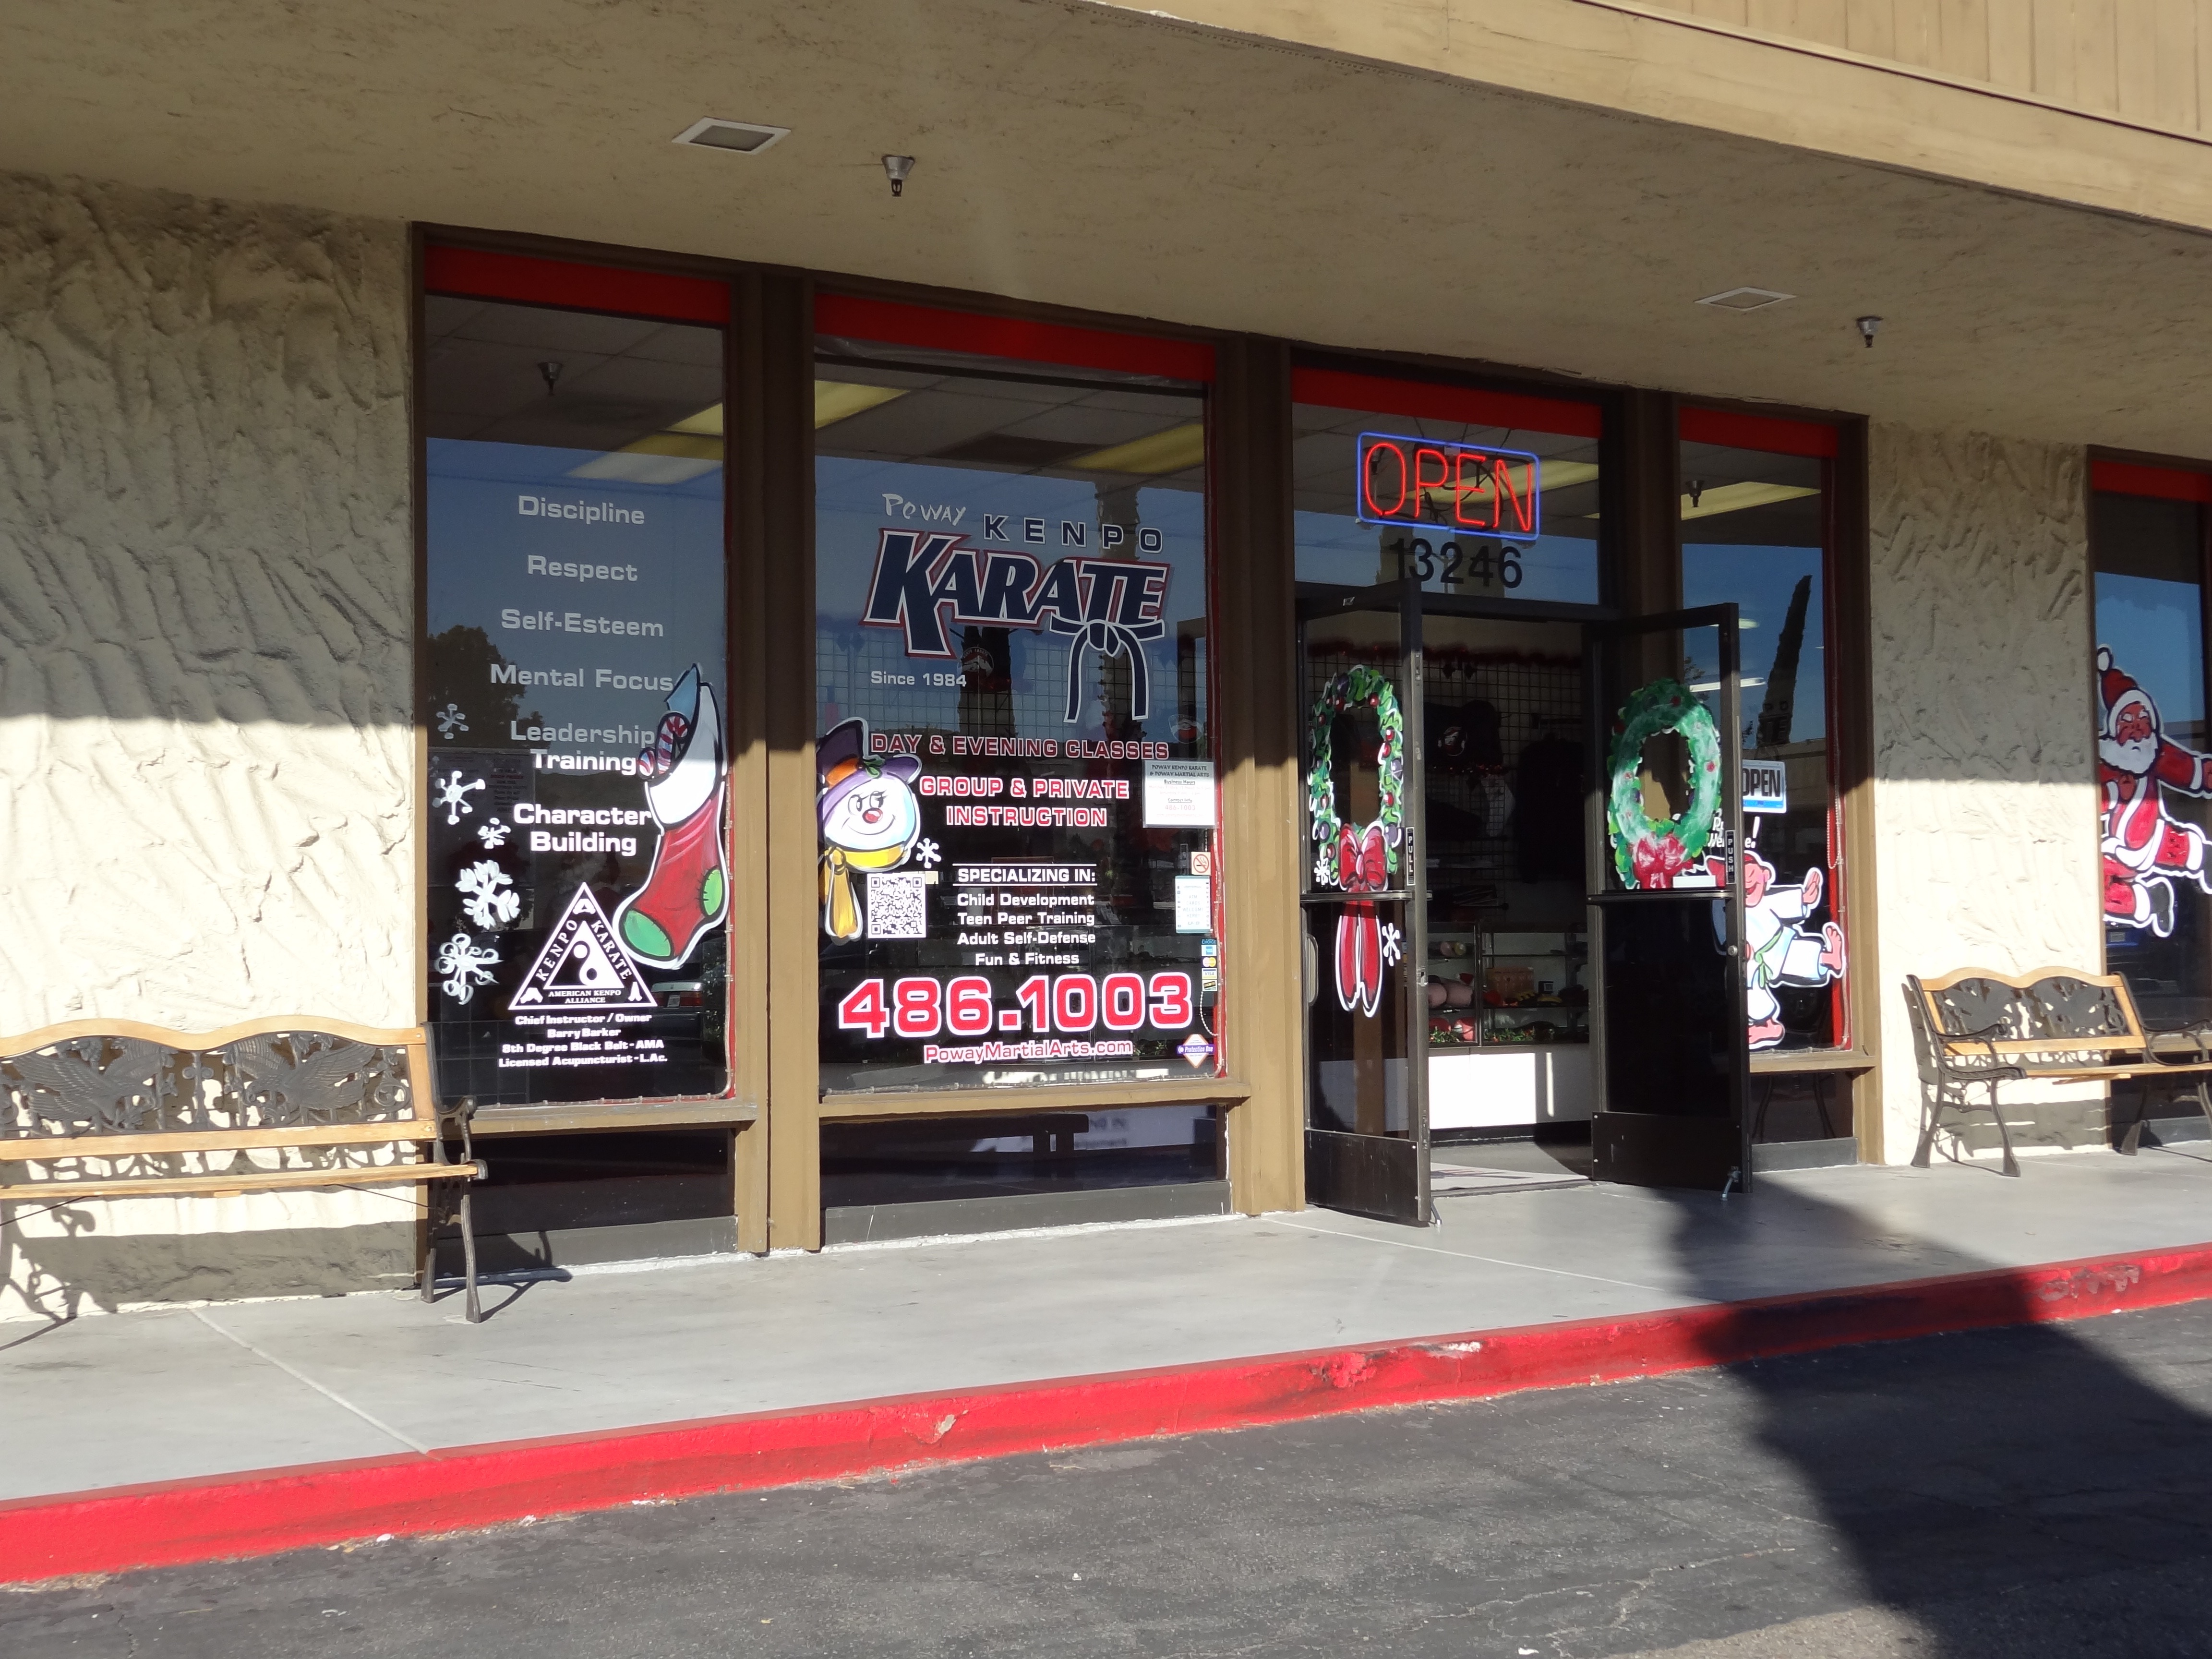 Convert Your Empty Window Into An Advertising E That Adds To Branding Or Product With Poway Sign Company S Custom Decals And Graphics